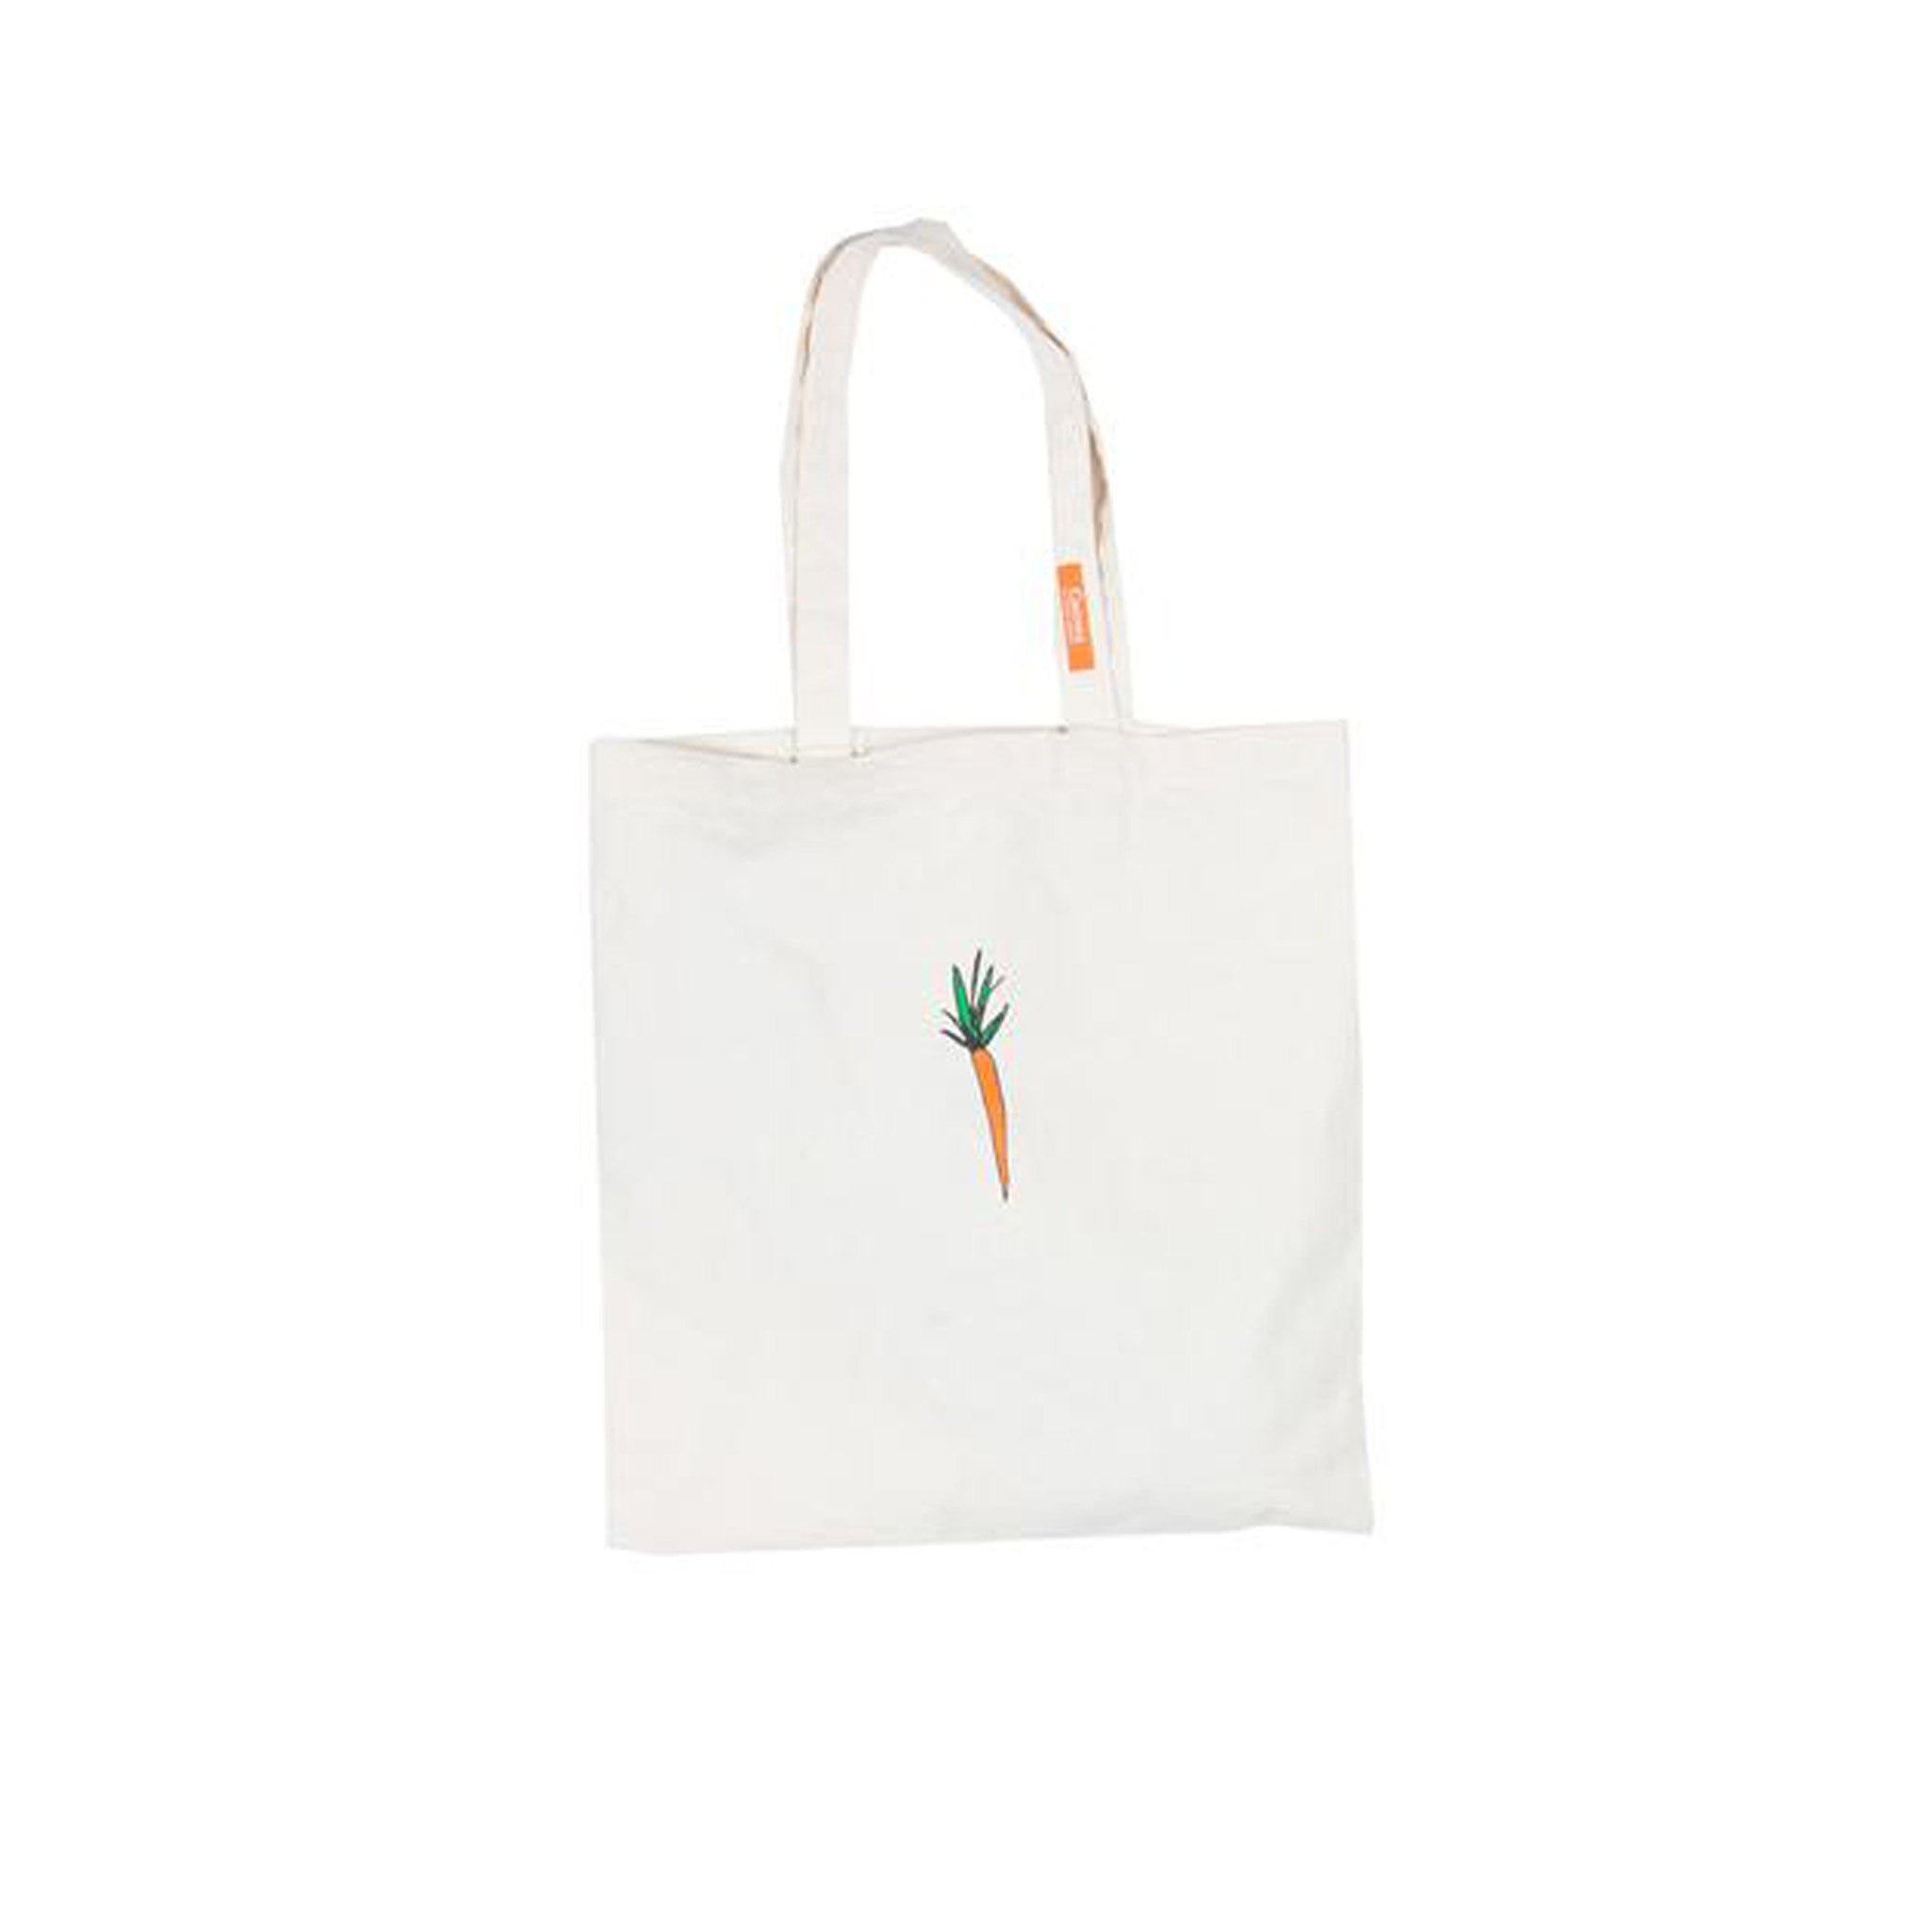 I Don't Carrot All Tote Bag Carrots by Anwar Carrots Front View